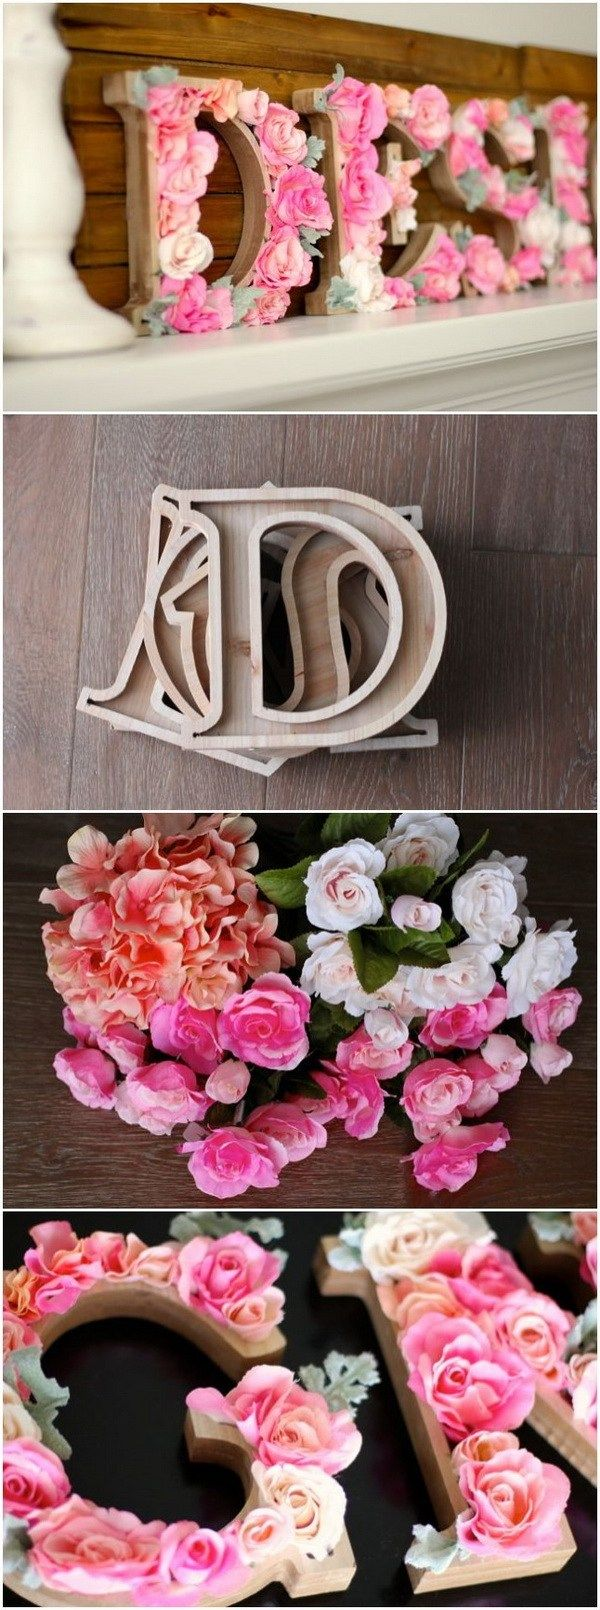 24 diy bedroom decor projects cute diy room decor ideas for teens